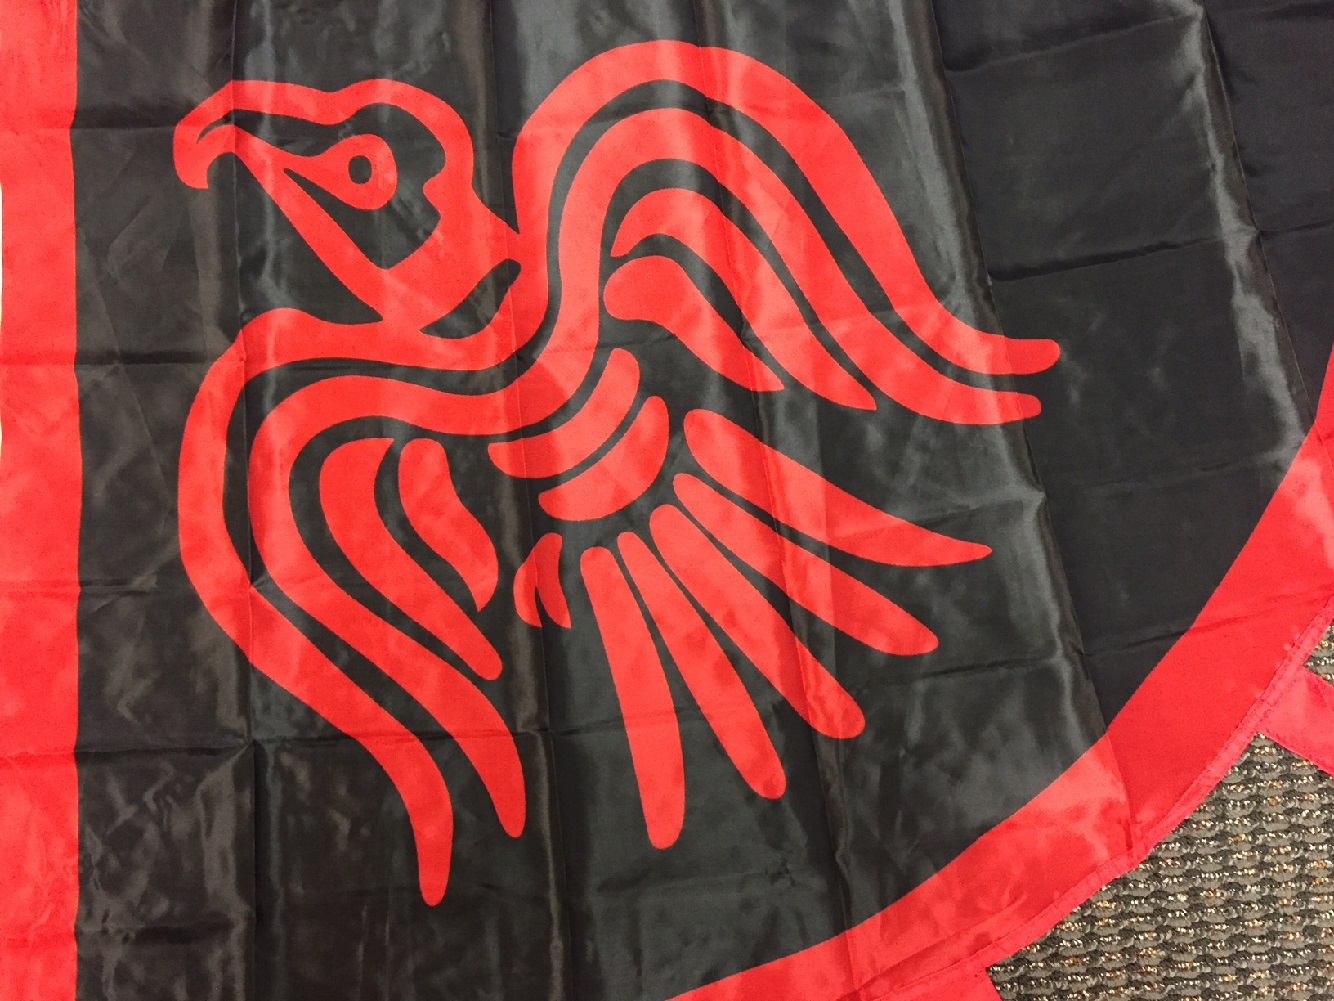 Scandinavian Viking Raven Flag 3 x 4 Foot Red and Black Norse Pirate Banner New